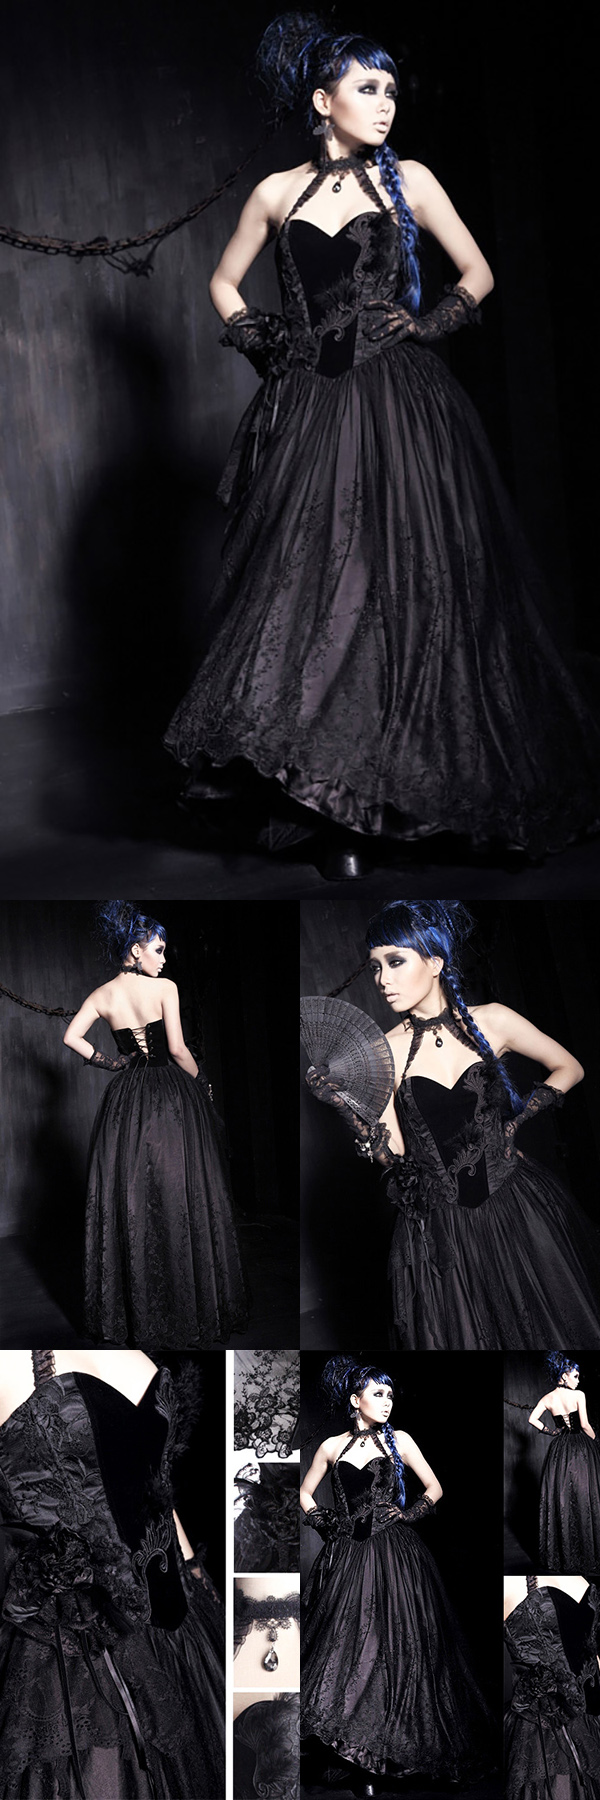 Punk rave gown stunning gothic gown in black crafted with